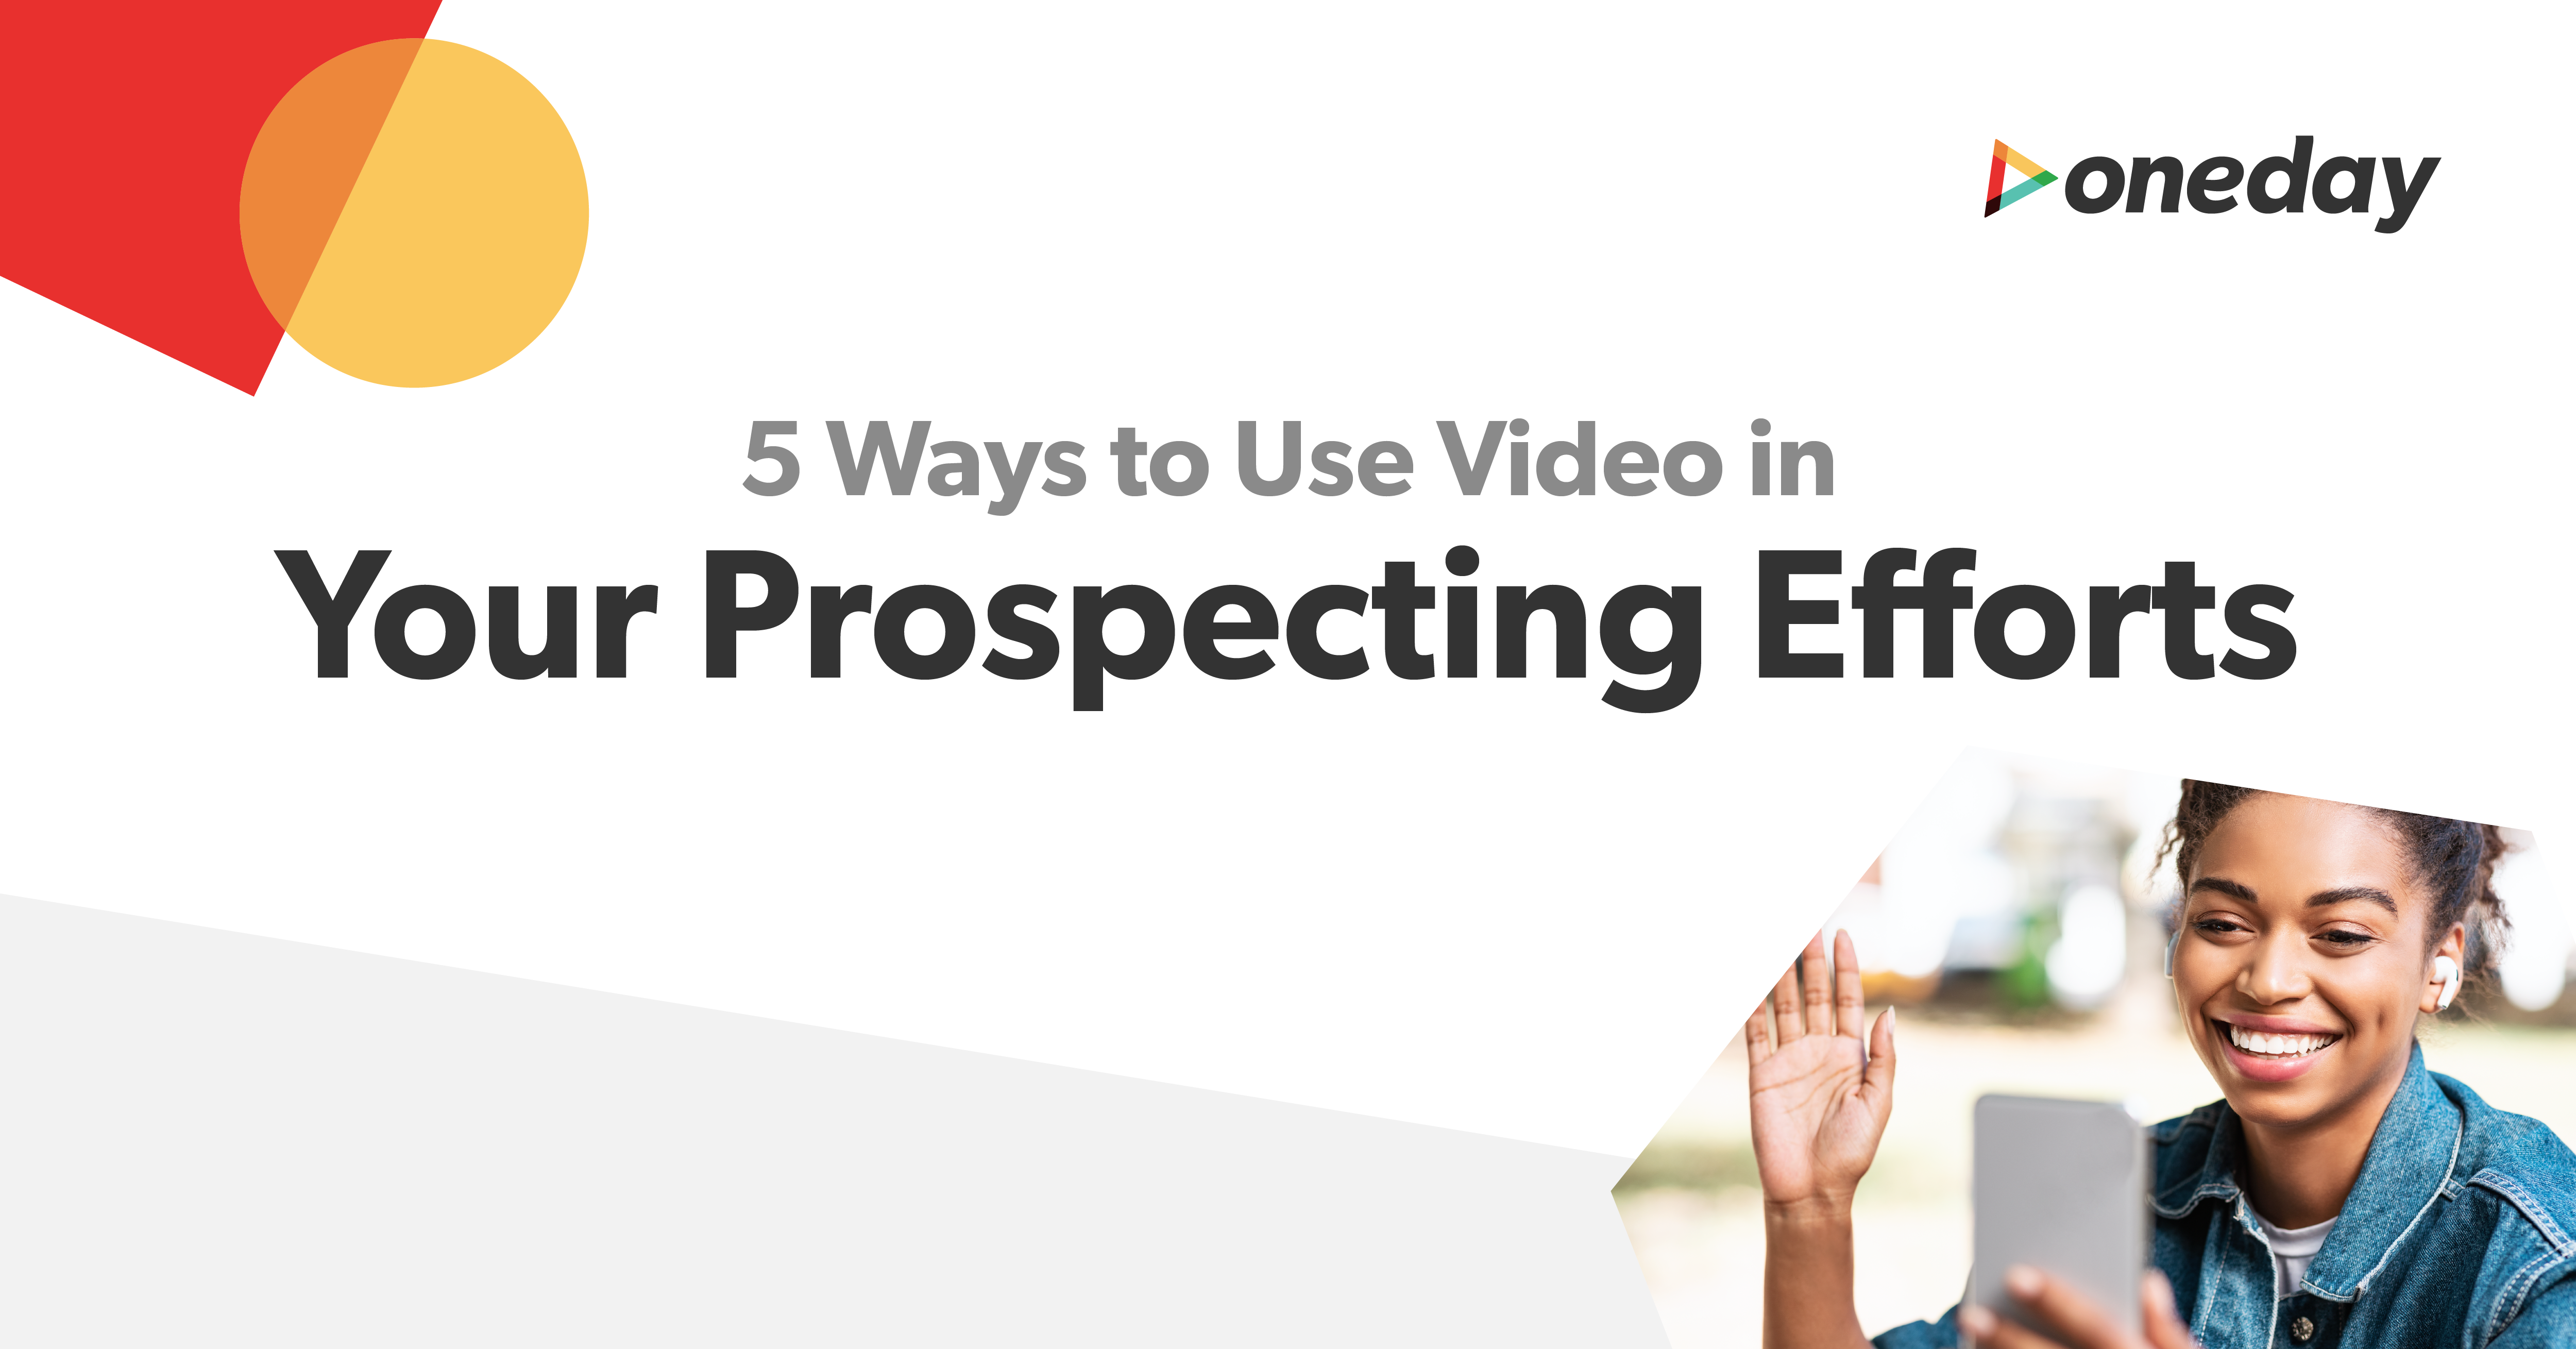 Simple ways your sales and marketing team can use video to energize your prospecting efforts and start driving more move-ins.